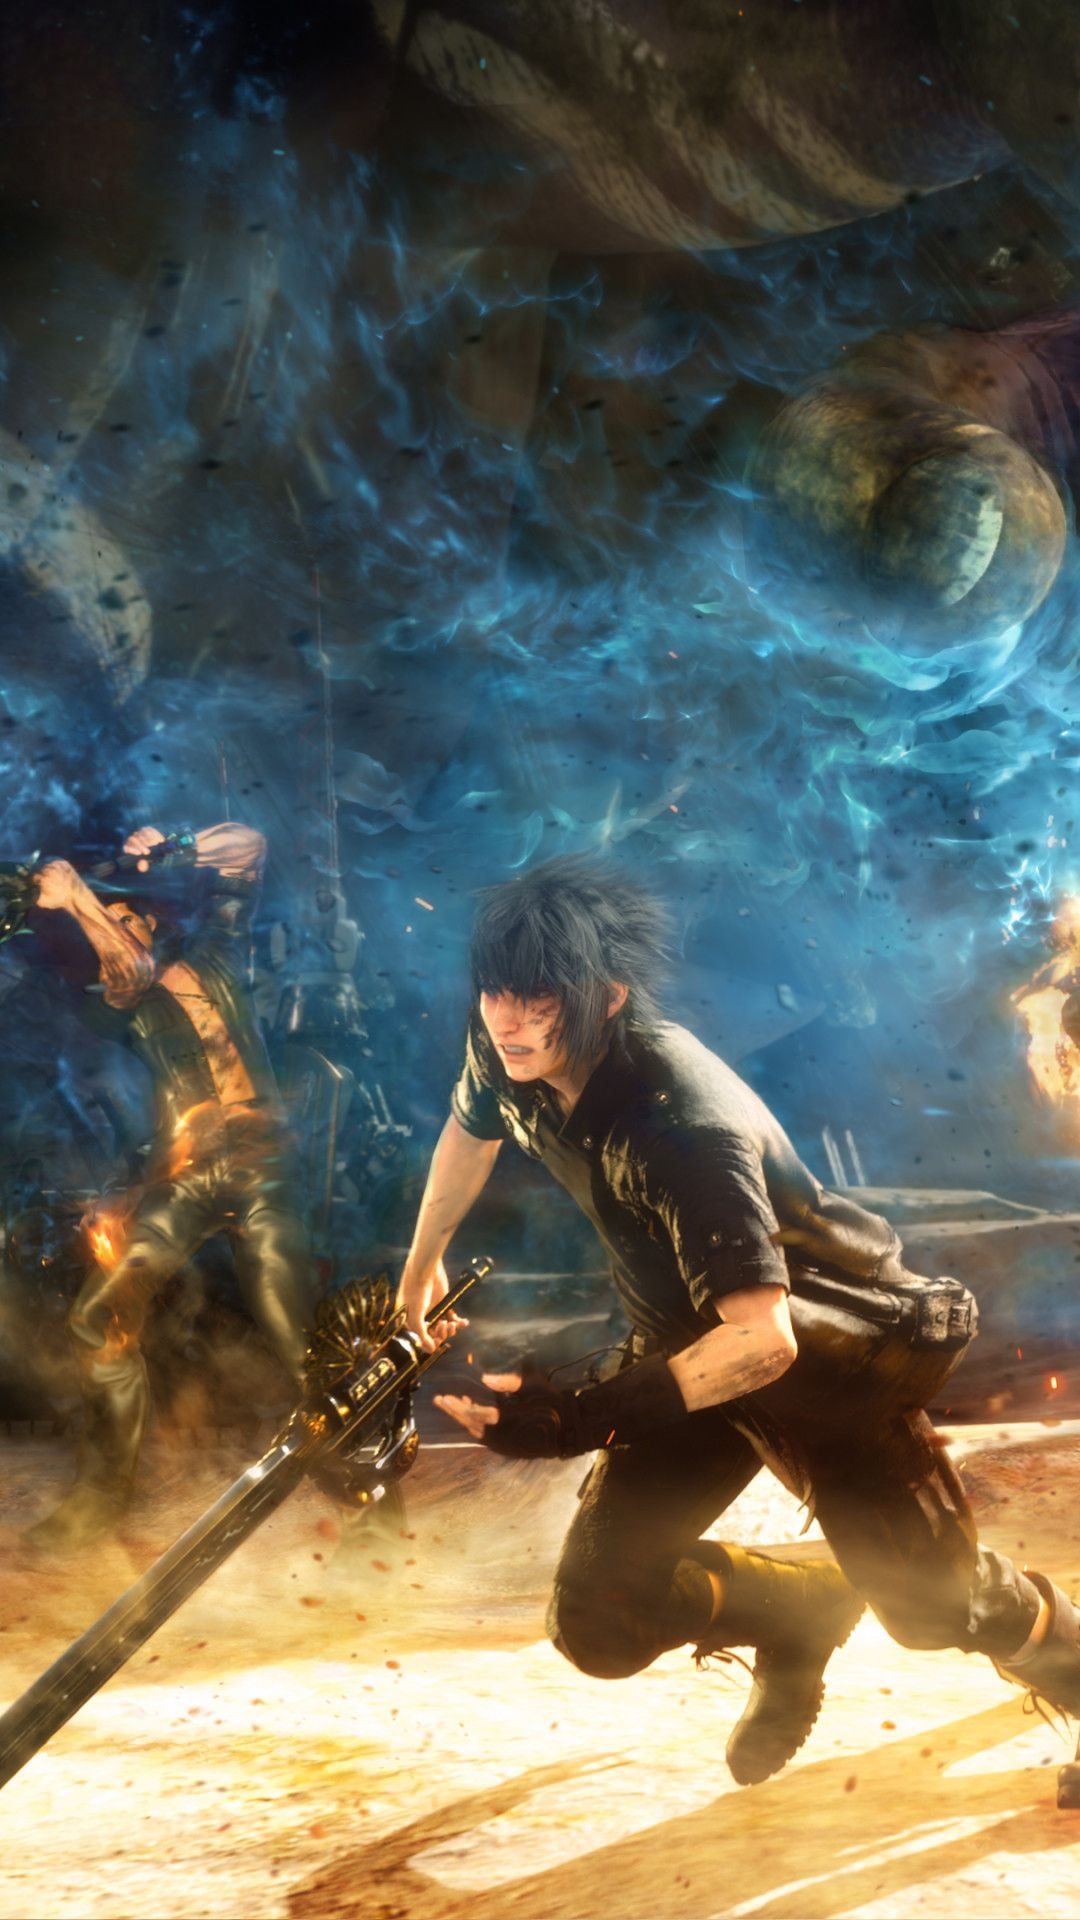 Lightning Ffxv Wallpaper Download Lightning Ffxv Wallpaper